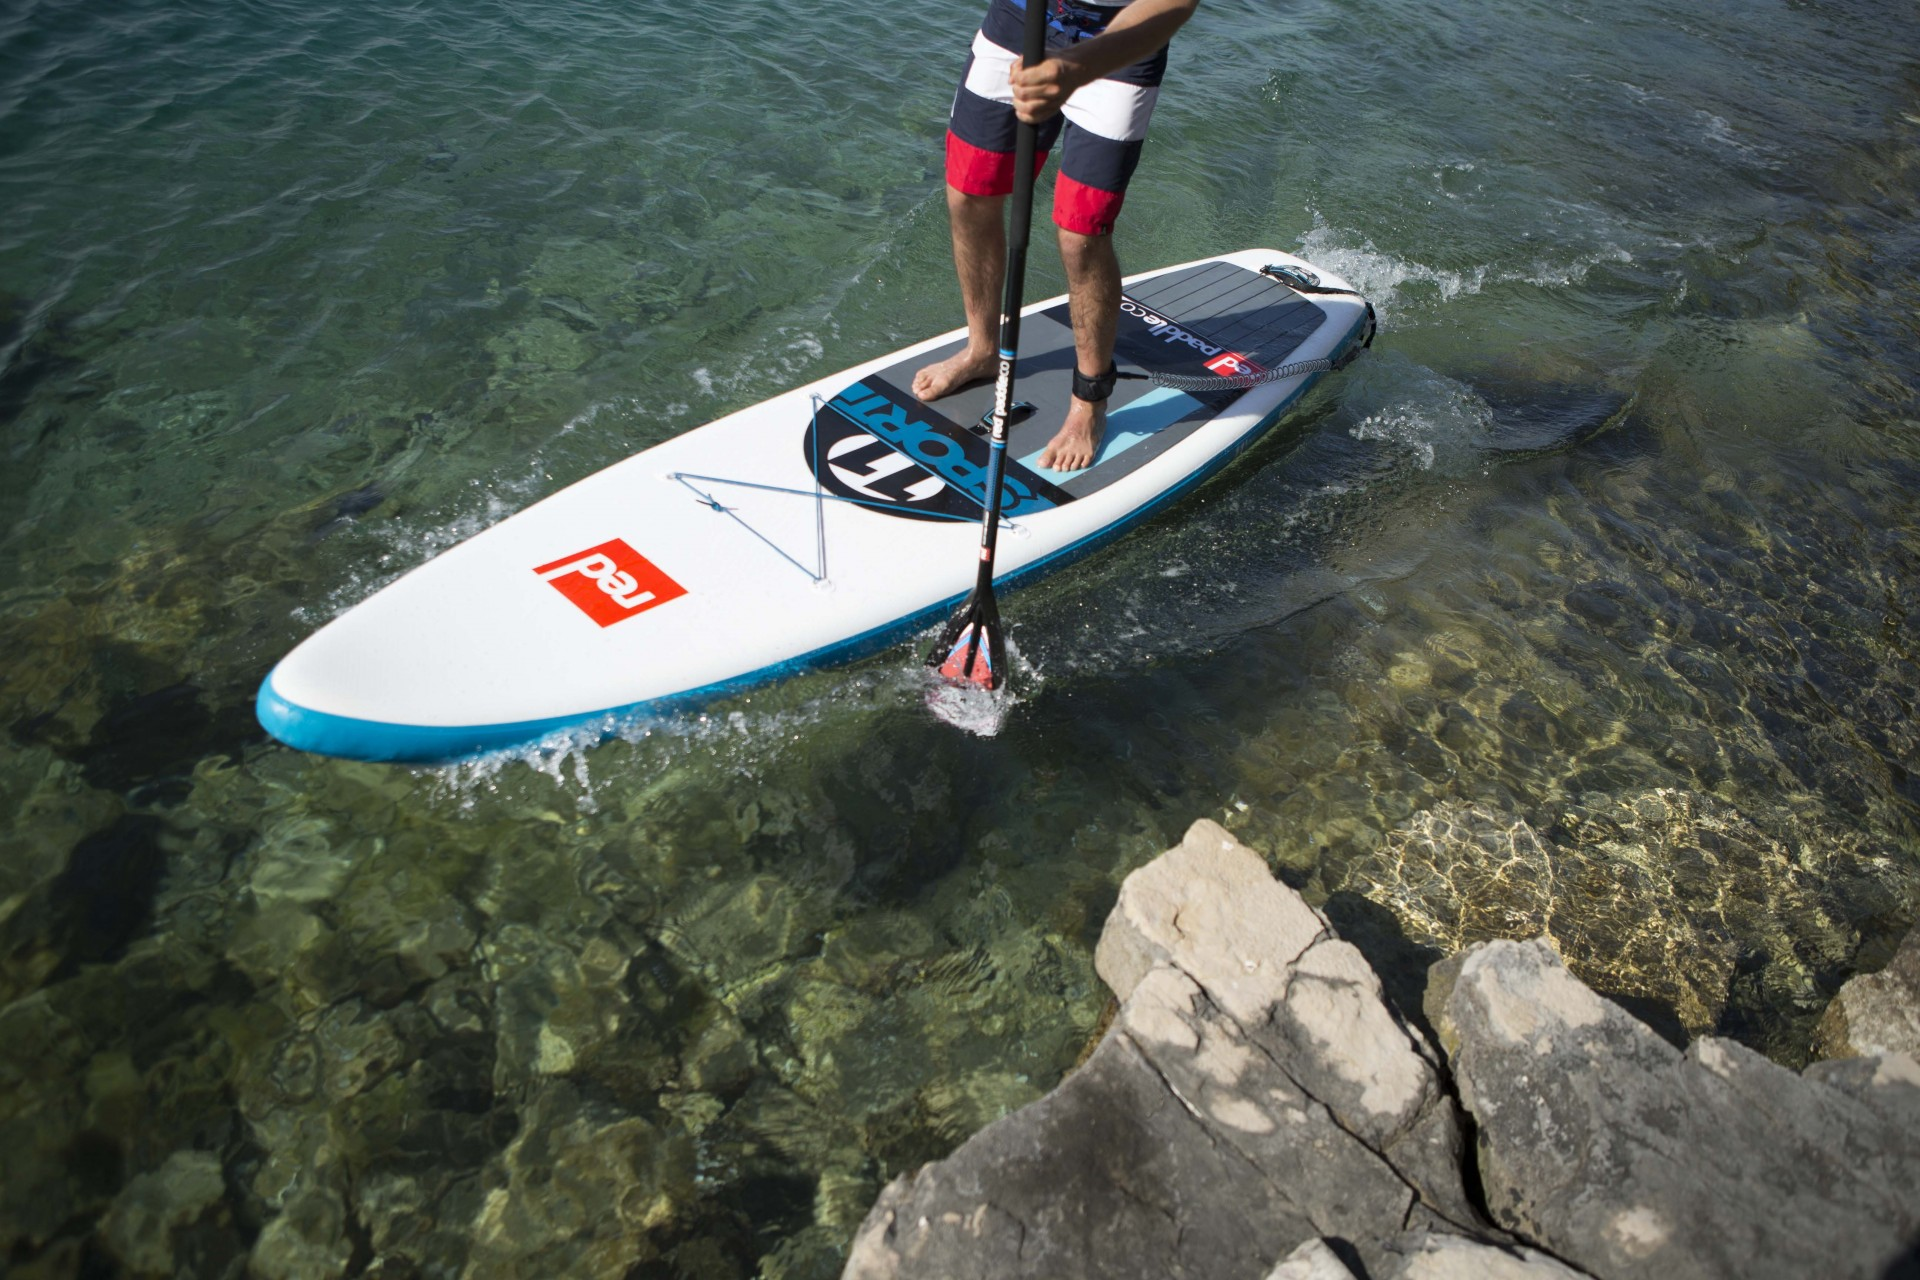 Red Paddle 11 Sport Inflatable Sup Aotearoa Surf